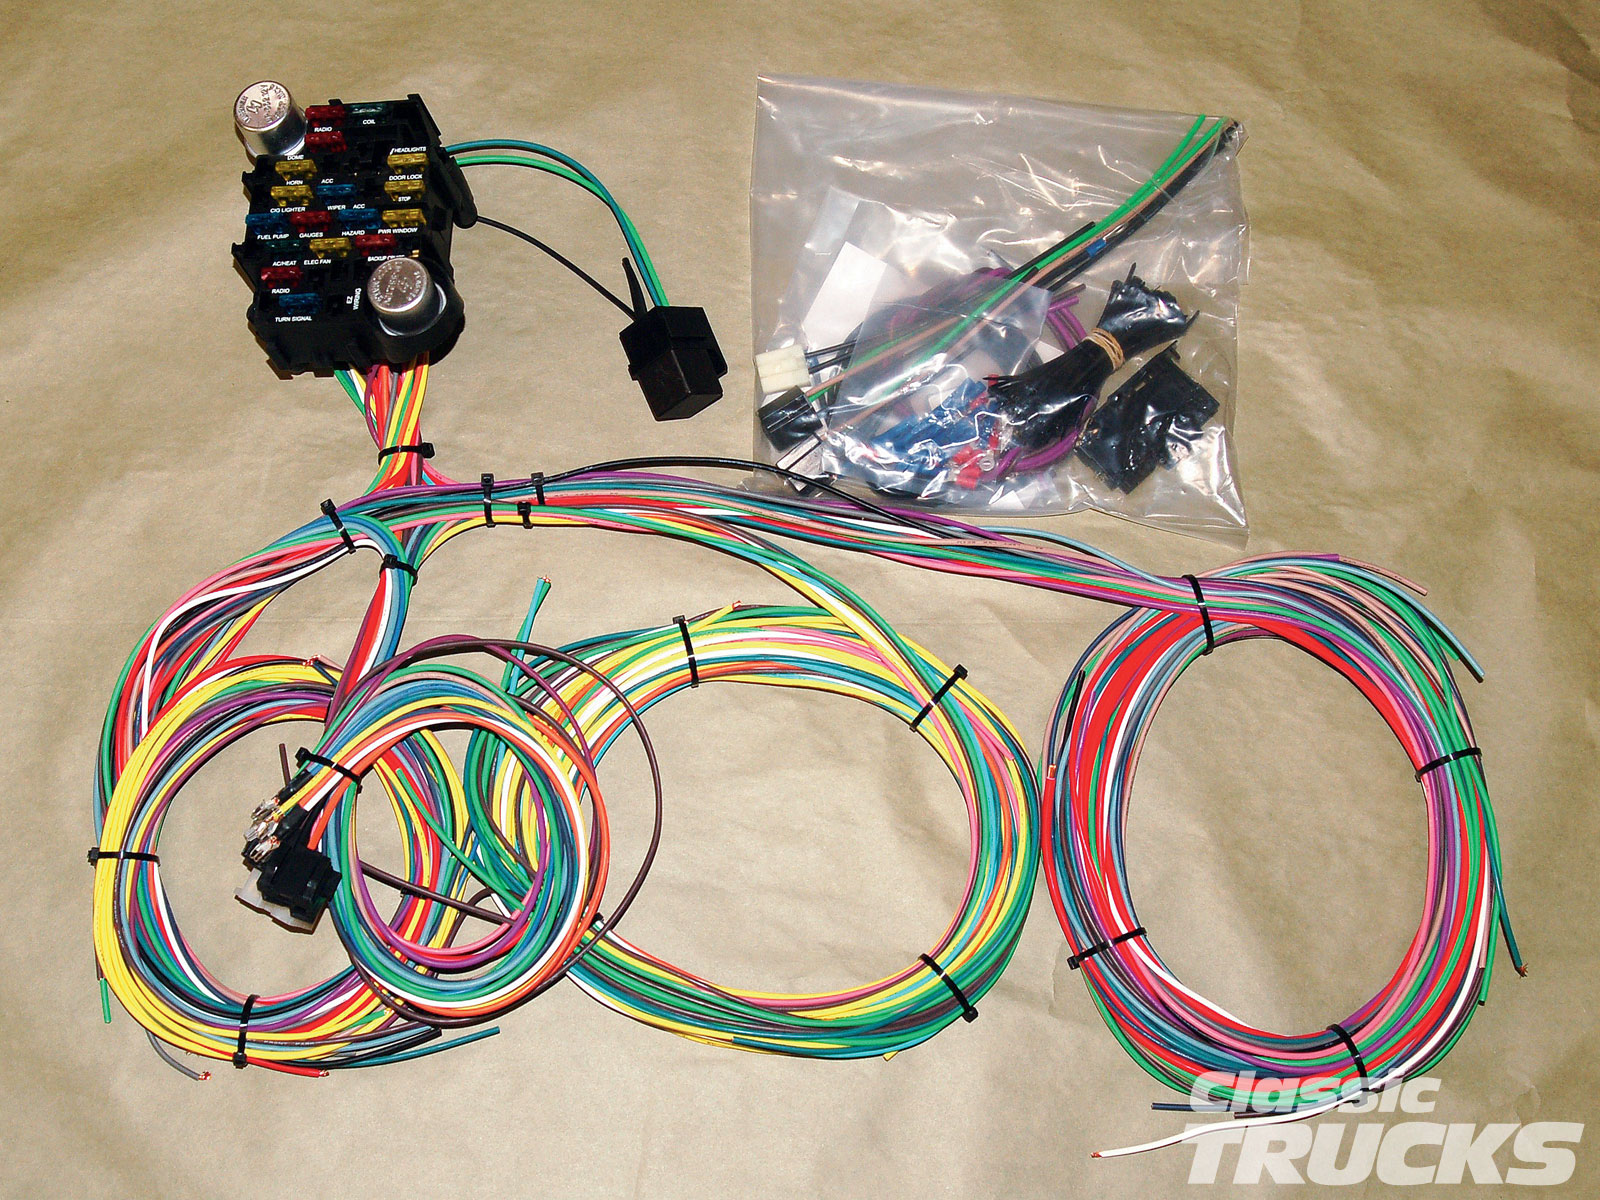 1010clt 02 o aftermarket wiring harness install kit?resize\\\=665%2C499 painless wiring harness australia tamahuproject org painless wiring harness australia at honlapkeszites.co